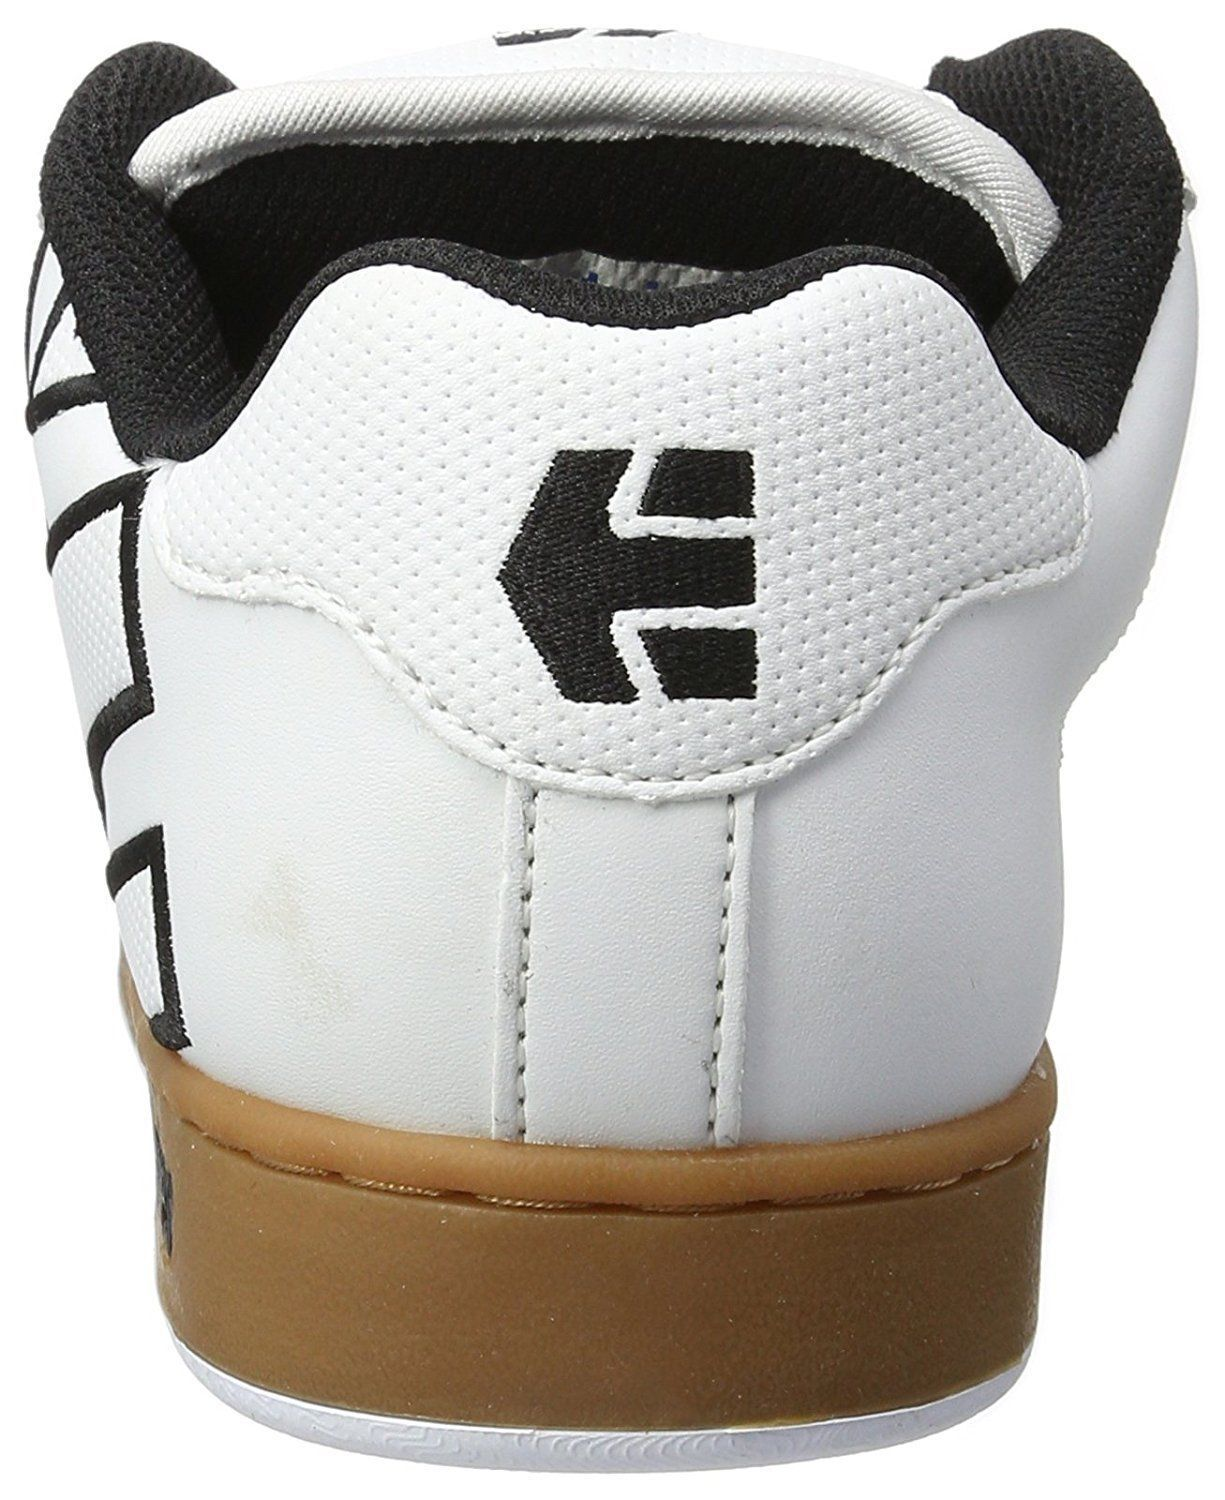 ETNIES FADER 4101000203-104 LOW SKATEBOARD SNEAKERS Uomo SHOES WHITE 4101000203-104 FADER SIZE 12 NEW a82212